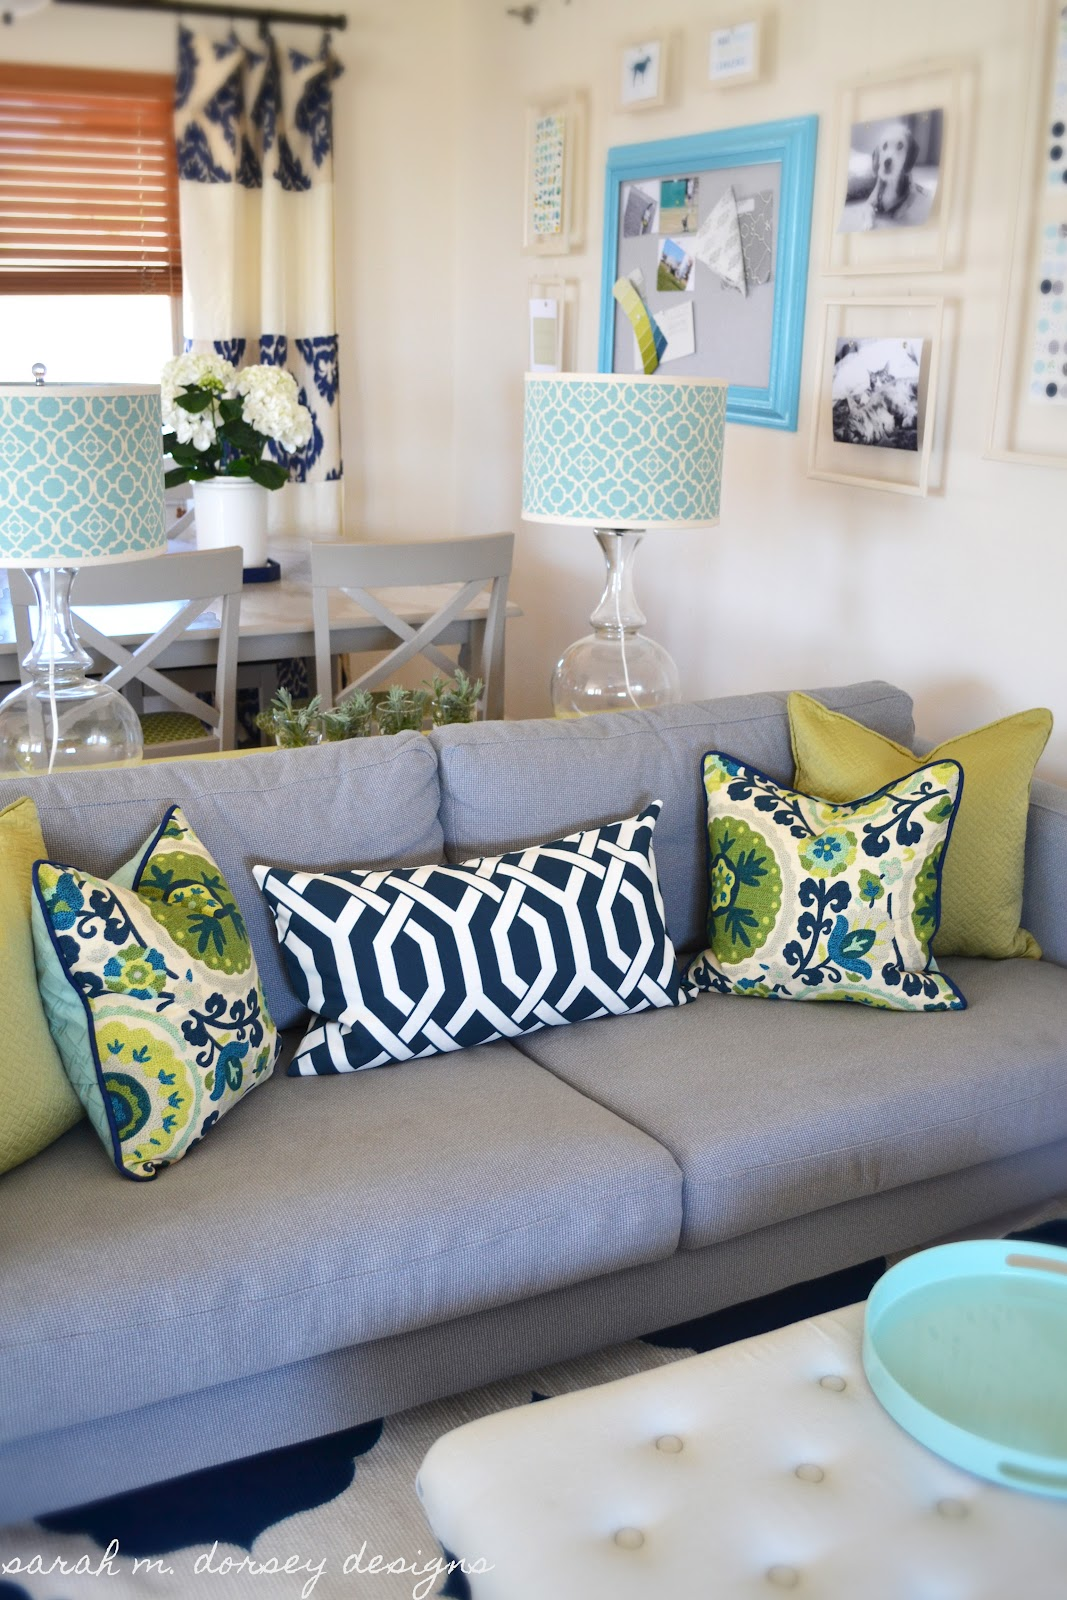 Sarah M Dorsey Designs Pillow Shams For The Living Room